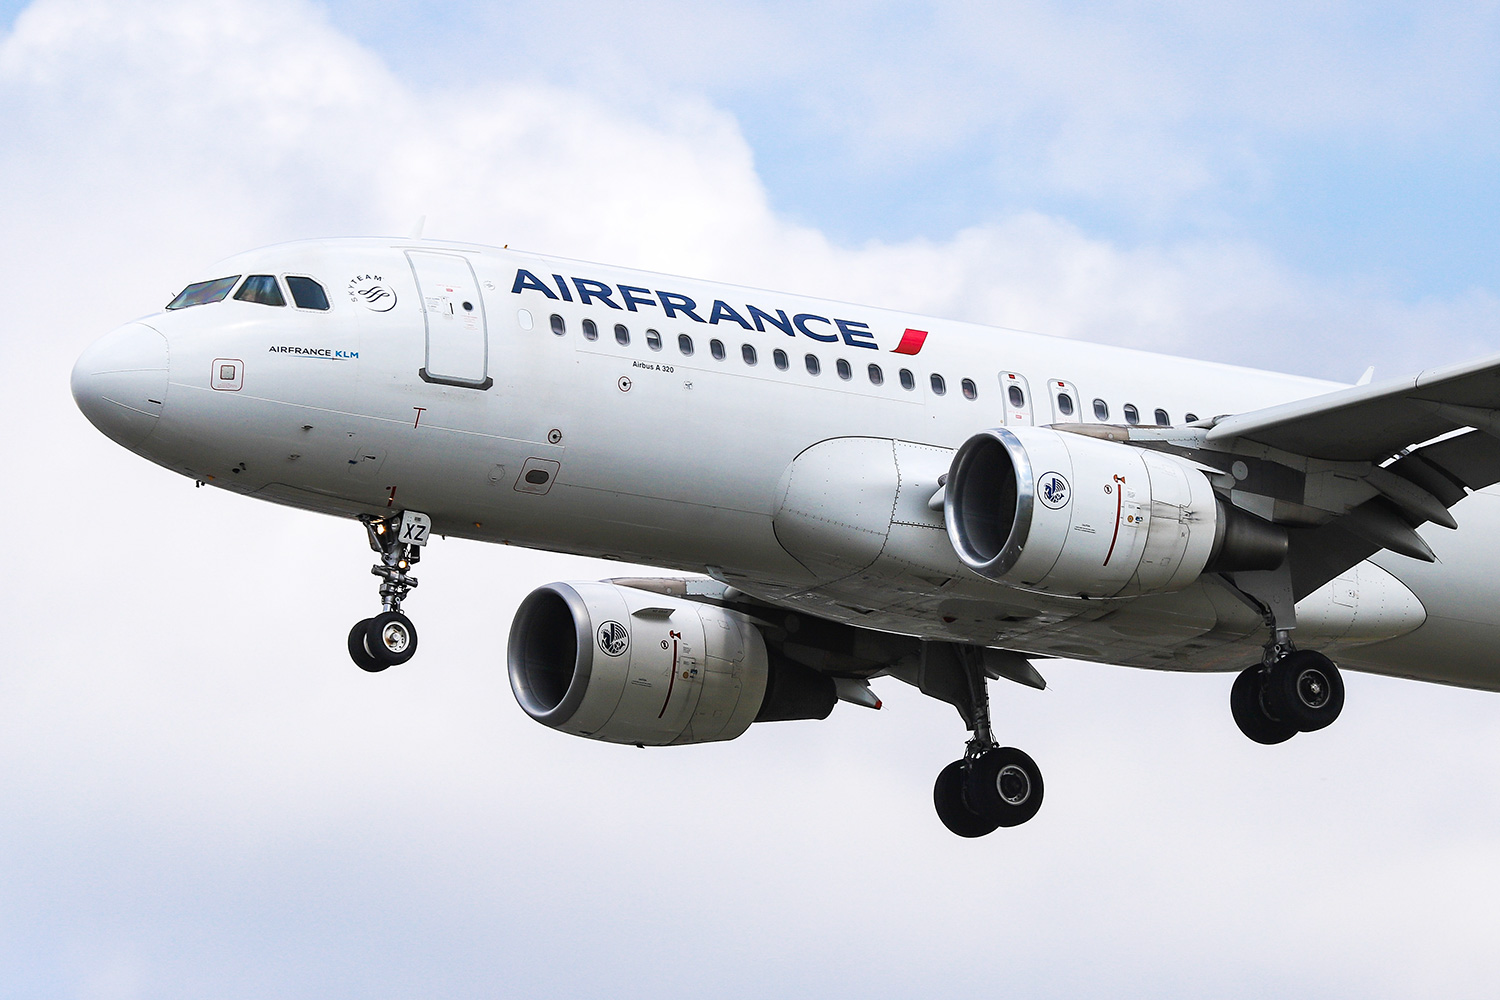 Air France Airbus A320 as seen from Myrtle avenue on final approach landing at London Heathrow International Airport LHR EGLL in England, UK on 23 August 2019. The Airbus A320-214 airplane has the registration F-GKXZ, 2 CFM56 jet engines. AF AFR AIRFRANS connect the British capital to the French, to Paris Charles de Gaulle Airport CDG, LFPG. Air France the flag carrier of France is a member of SkyTeam aviation alliance and a subsidiary airline carrier of Air France-KLM group. (Photo by Nicolas Economou/NurPhoto via Getty Images)